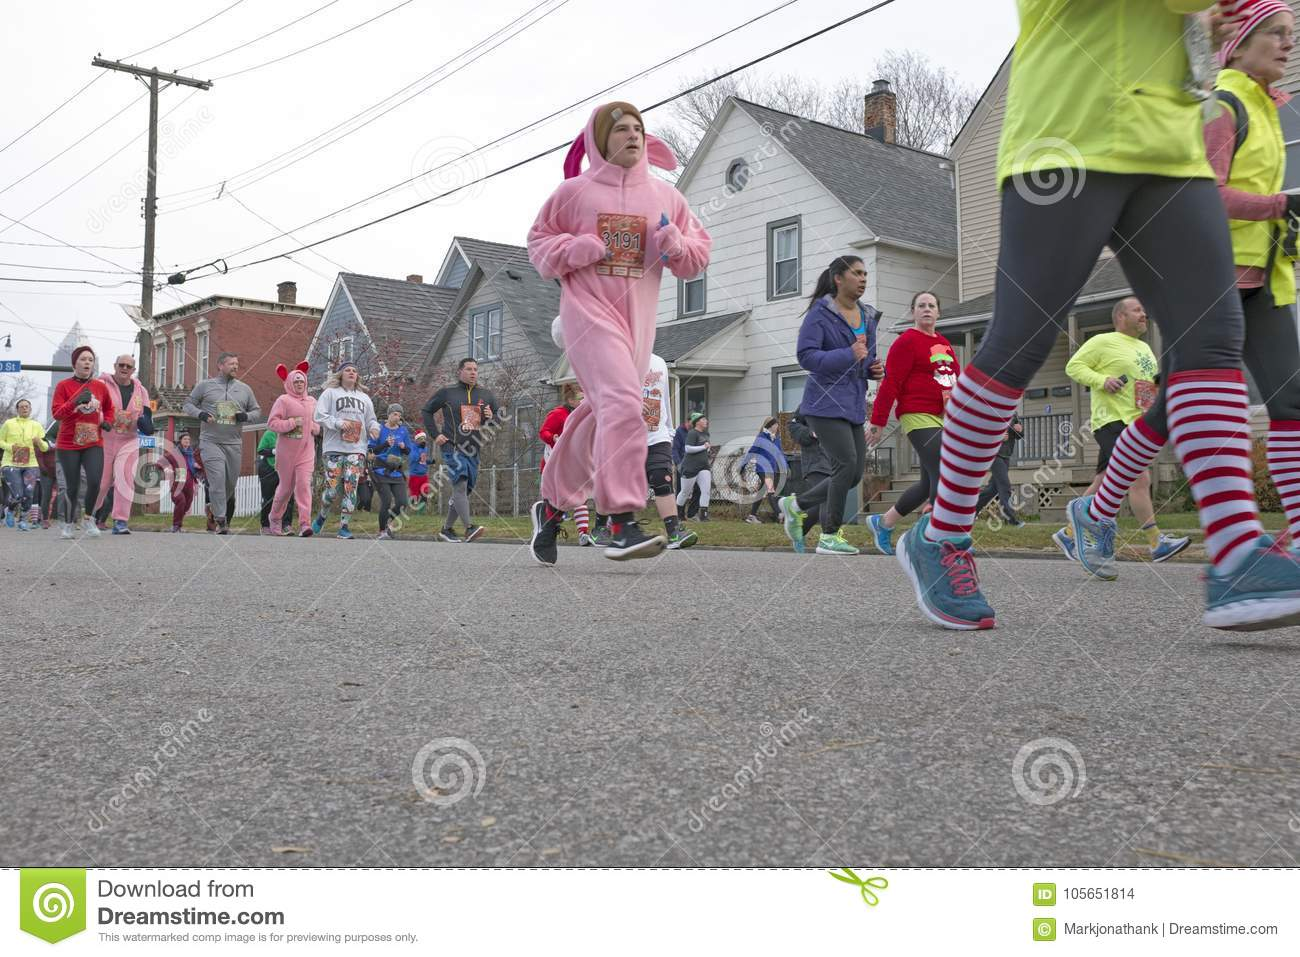 A Christmas Story Annual Run/Walk in Cleveland, Ohio, USA